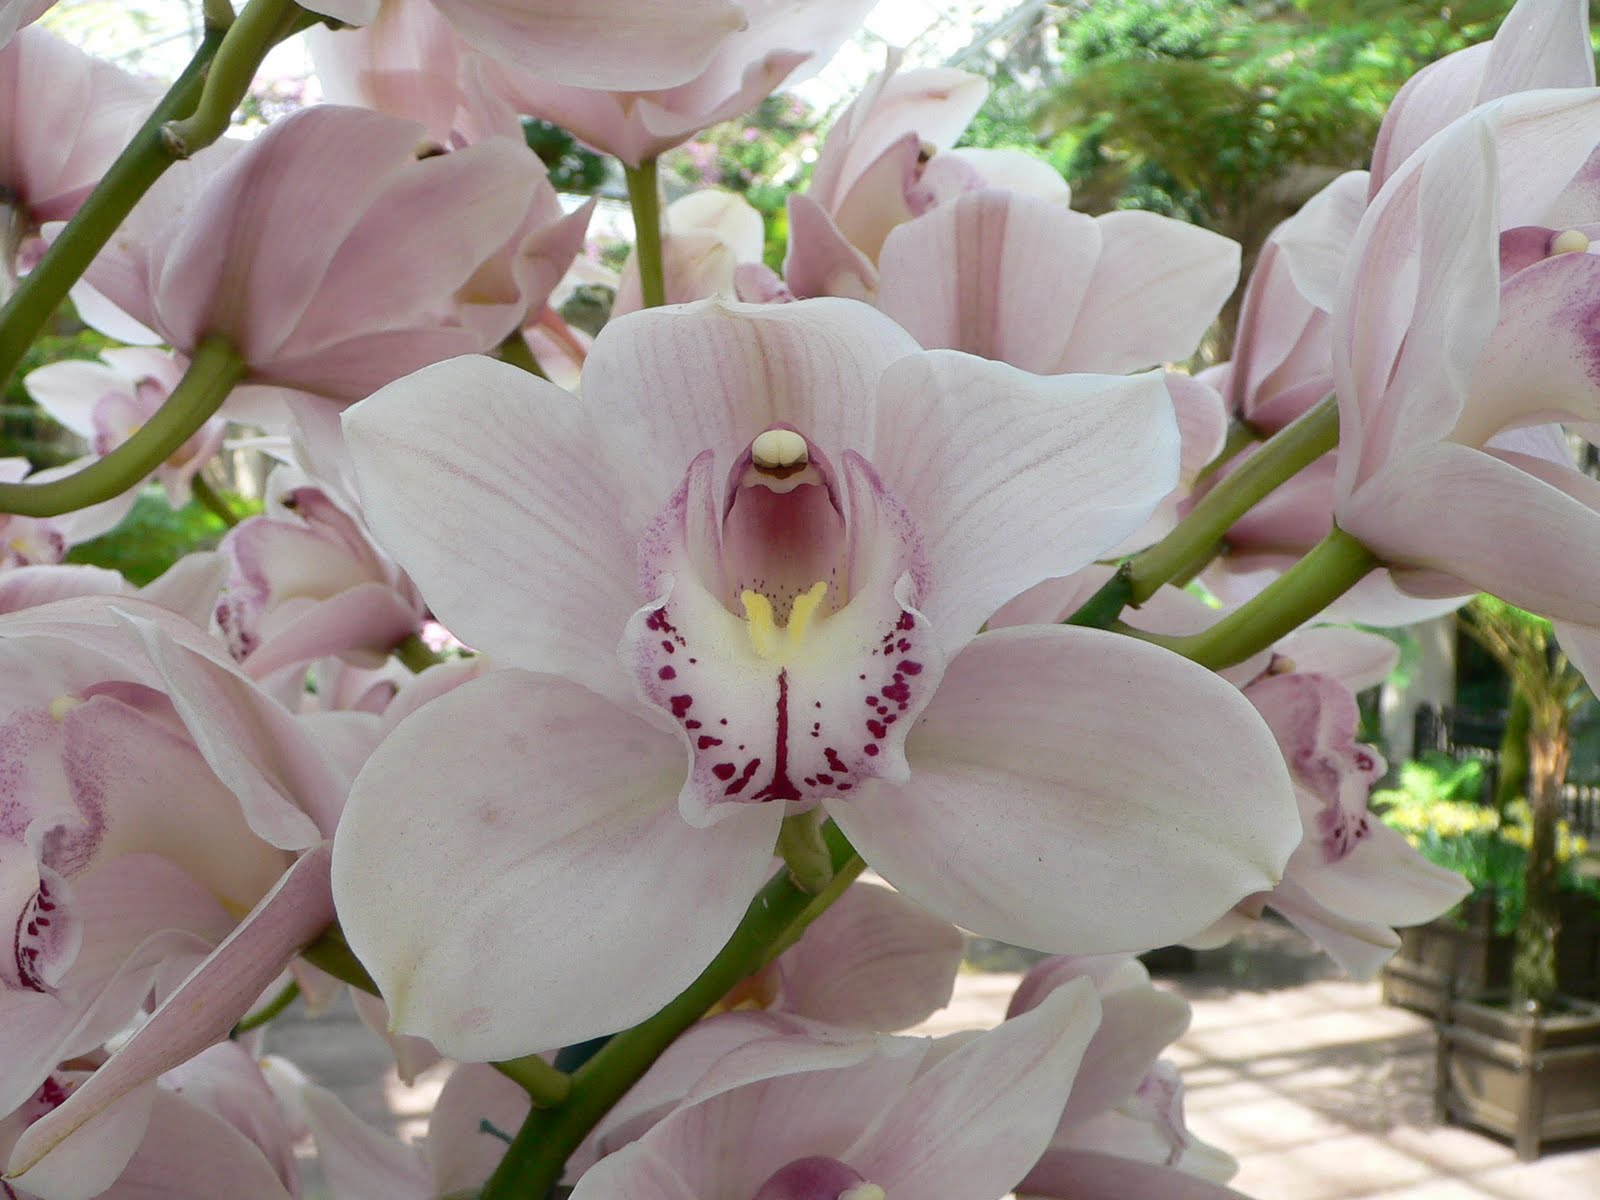 http://2.bp.blogspot.com/-H05-pm98rvI/Tf9_JwcD0FI/AAAAAAAAAVU/Fl42nMLyCuE/s1600/Cymbidium+Orchids+Flowers+Wallpapers+5.jpg